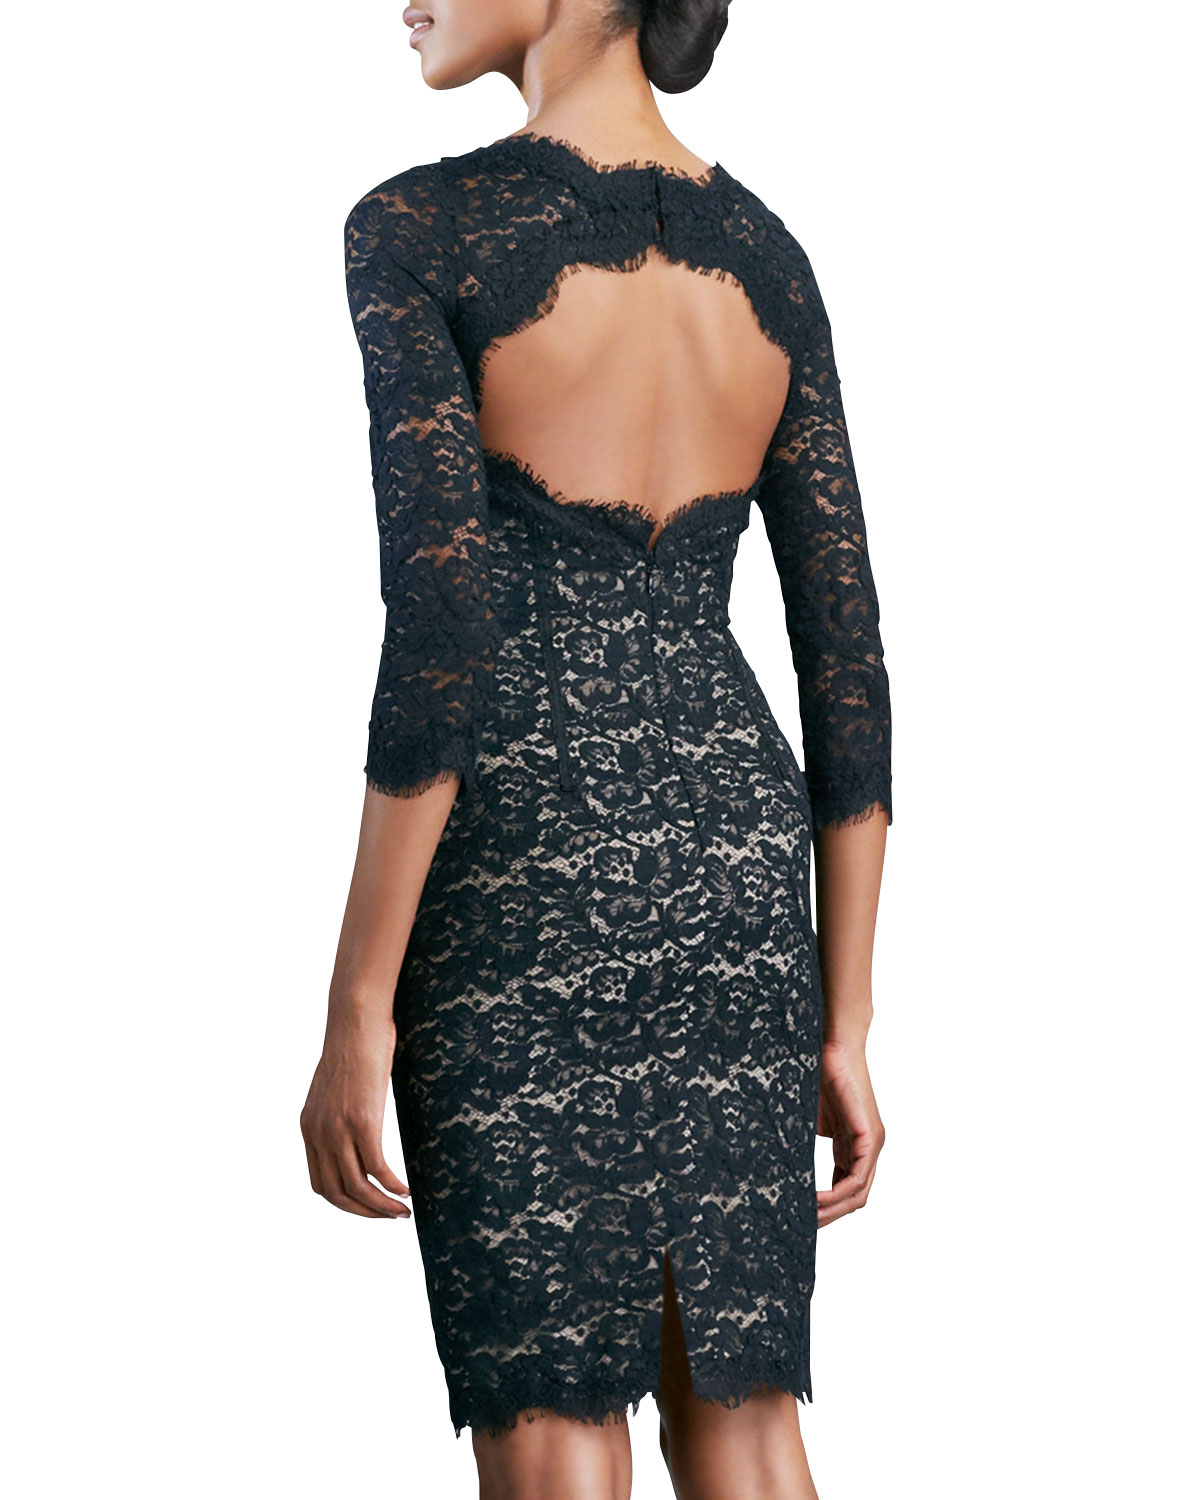 2019 year lifestyle- Back Open lace cocktail dress pictures